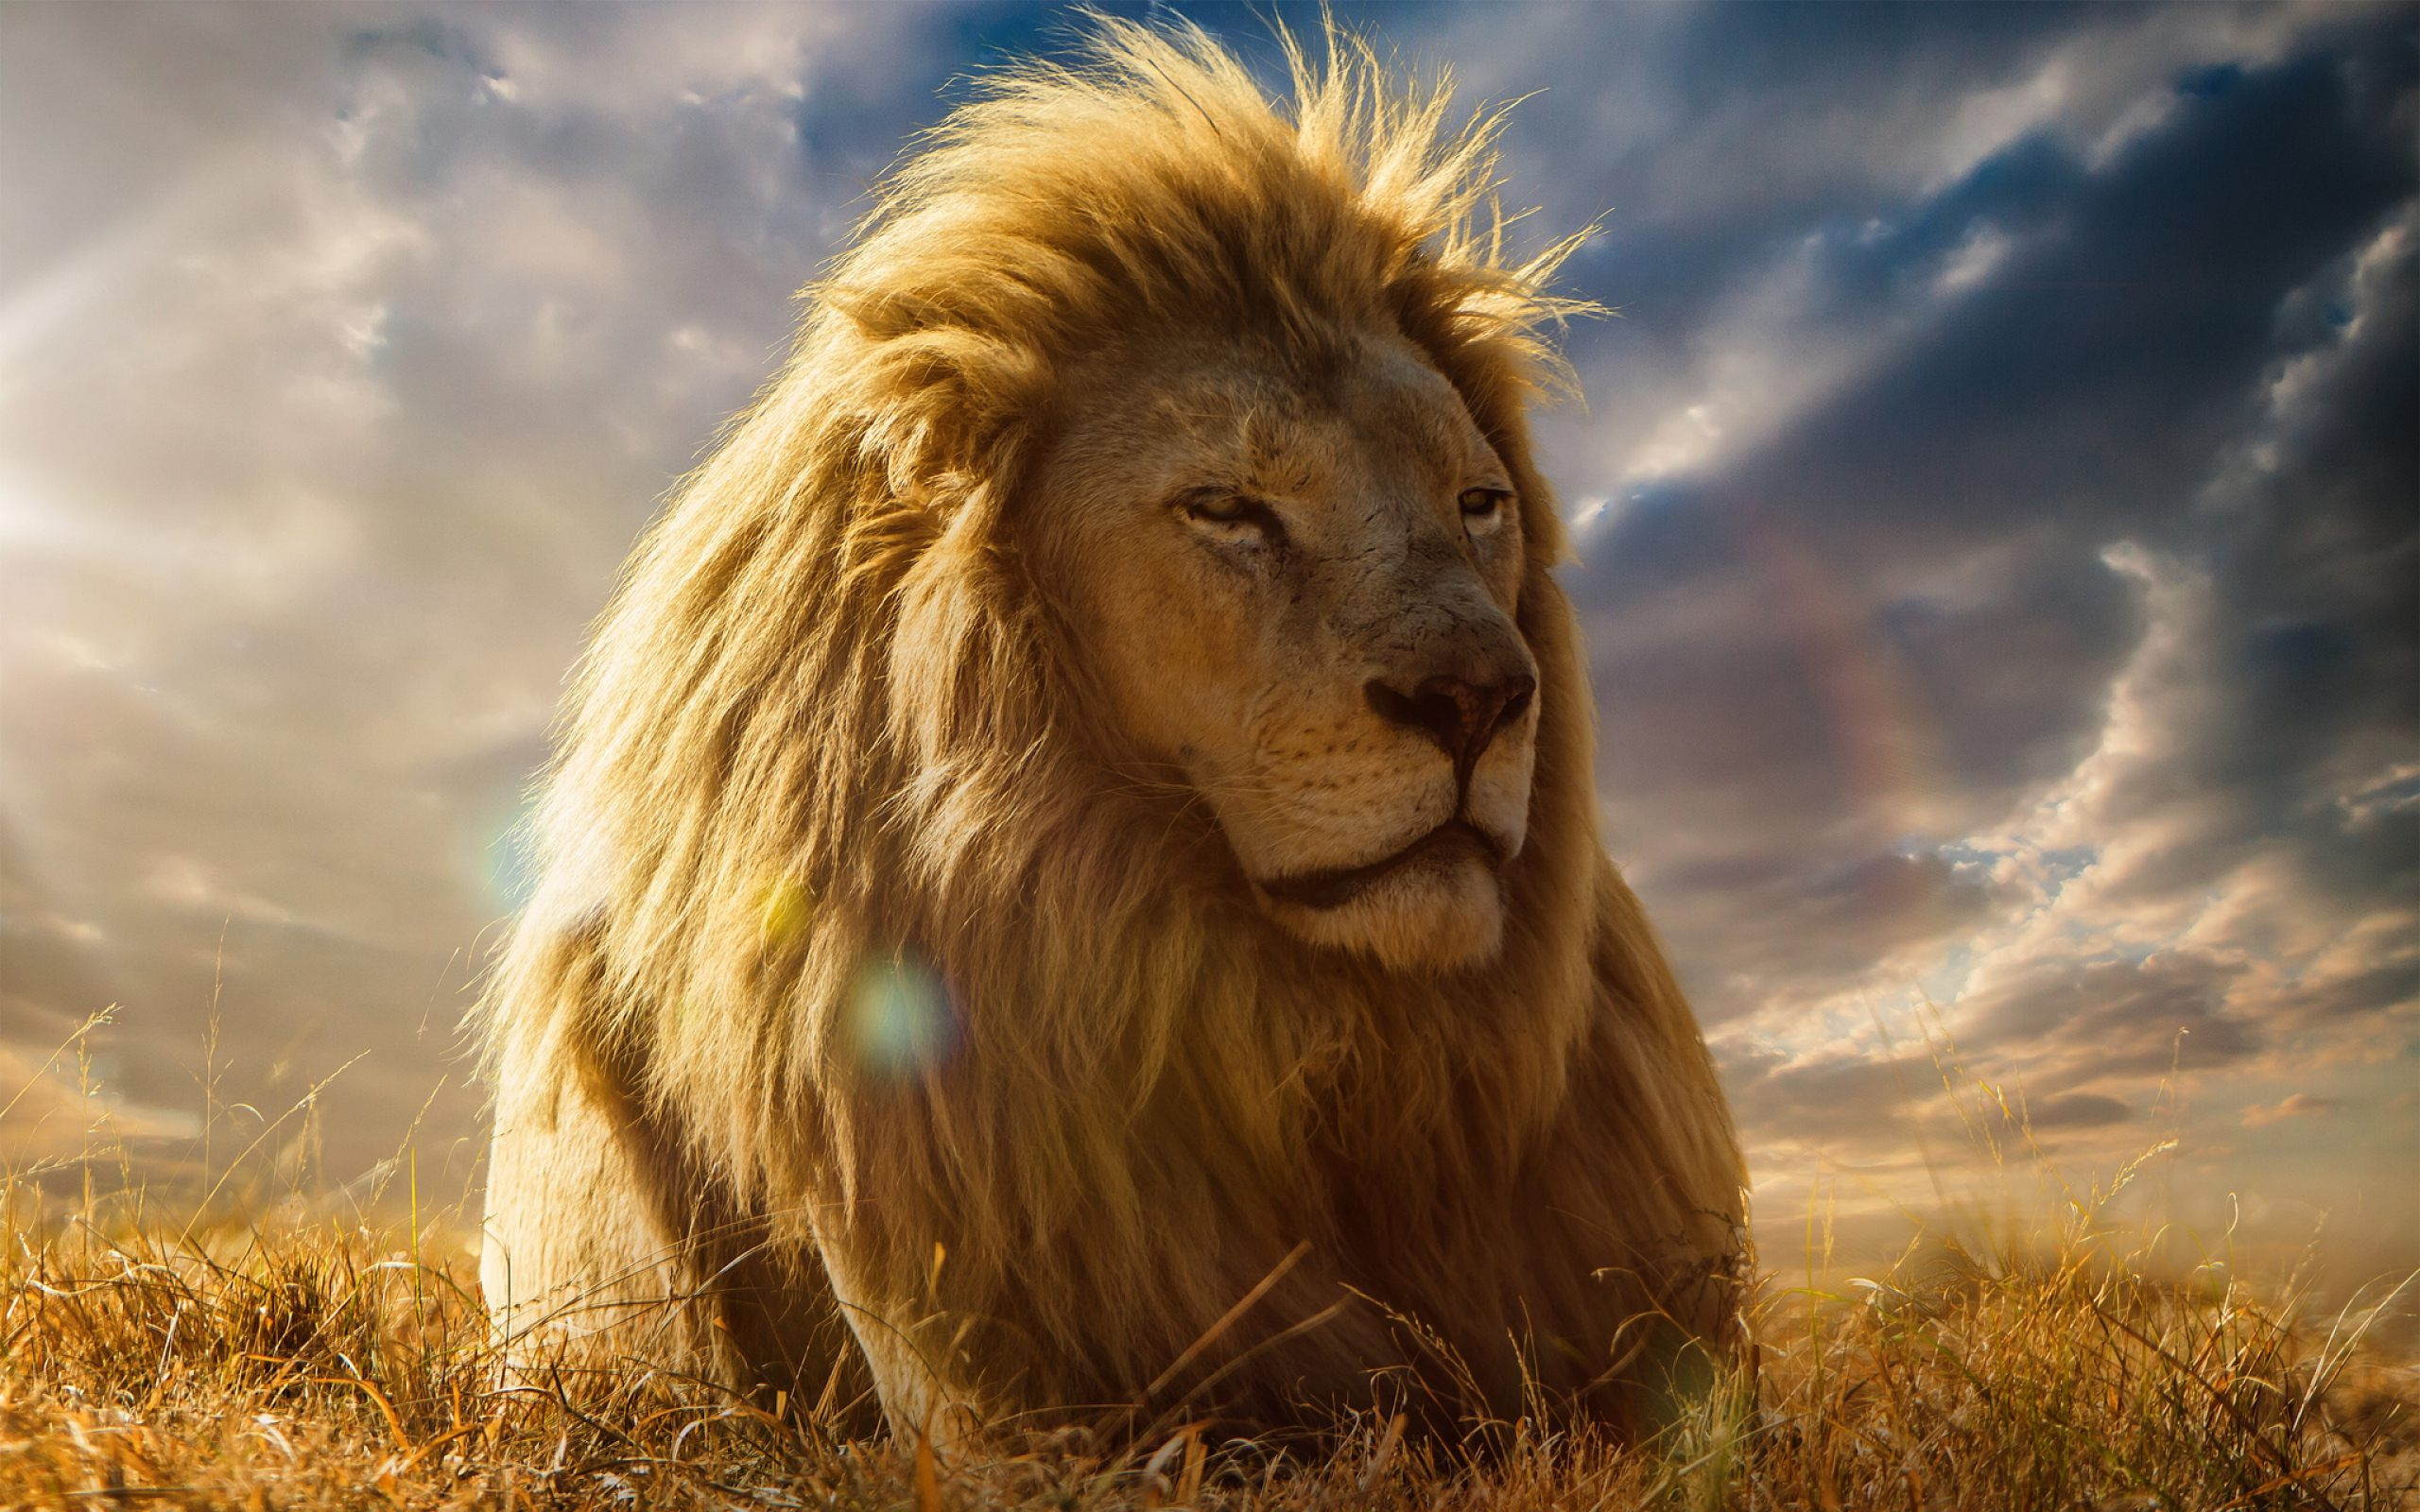 Big Lion Face HD Wallpaper Download For Desktop amp Mobile 2560x1600